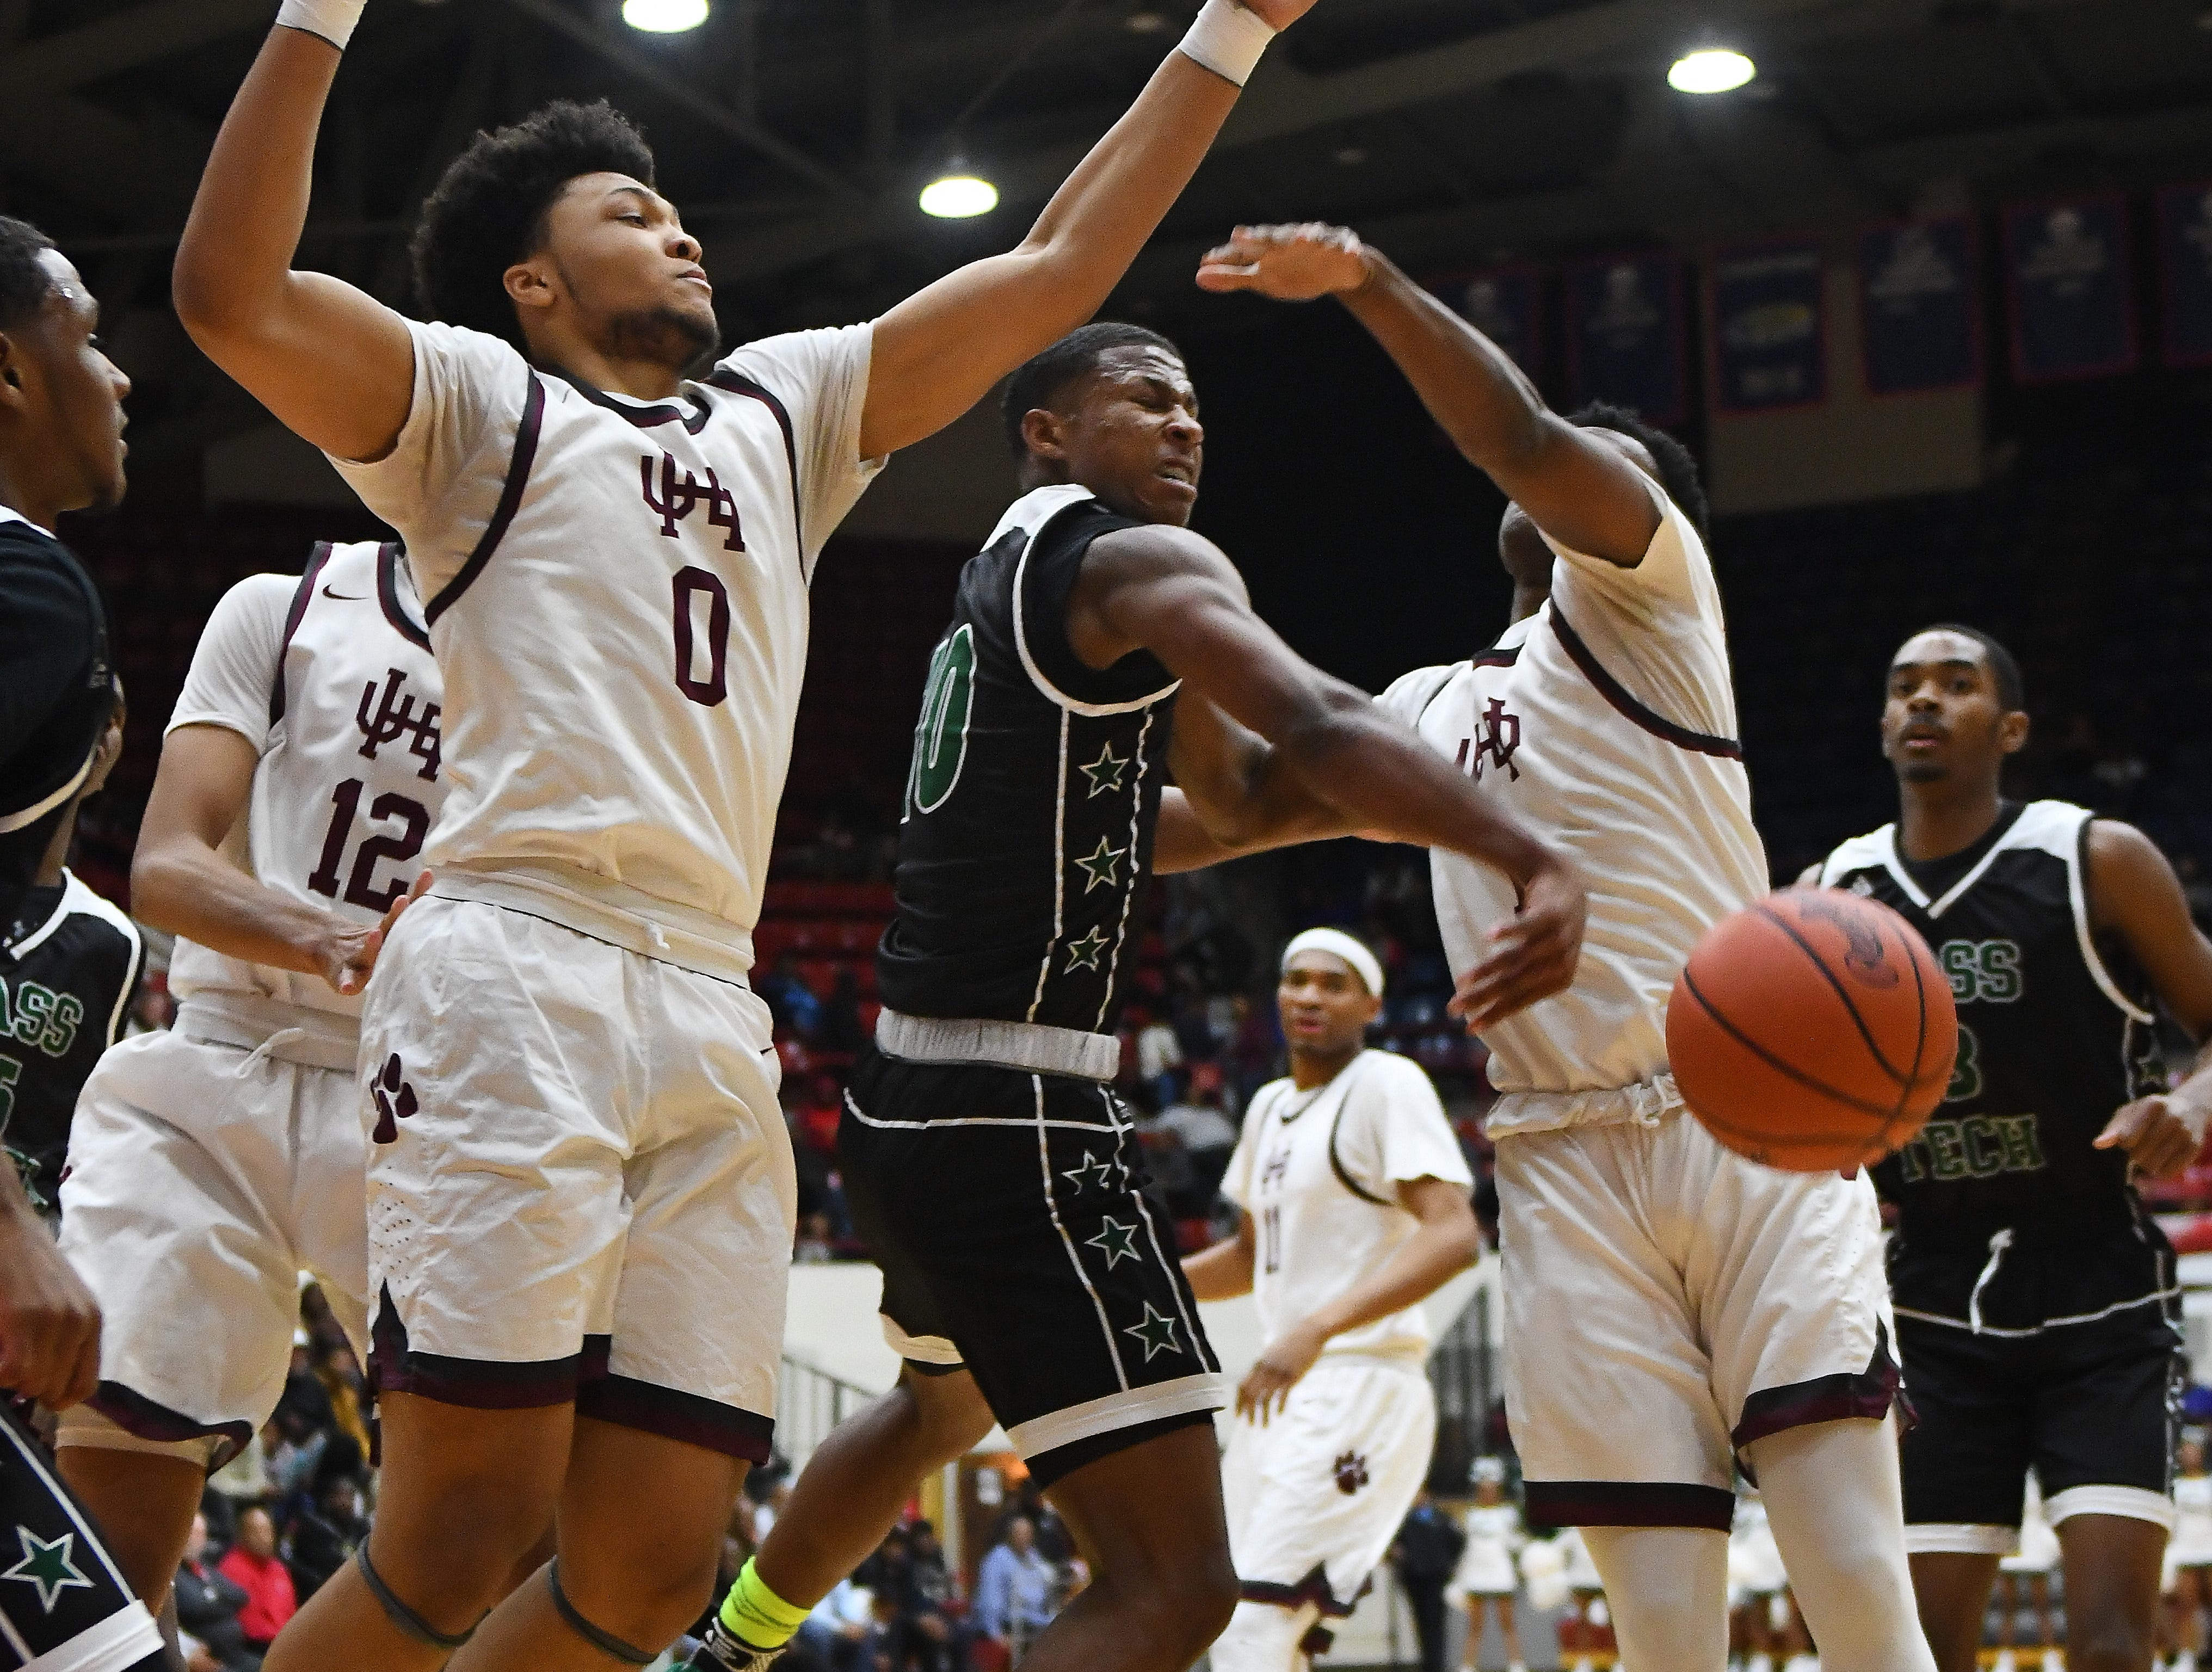 Cass Tech's Michael Washington Hills pass out of pressure by  U of D Jesuit's Daniel Friday and Julian Dozier in the first half of the championship game.